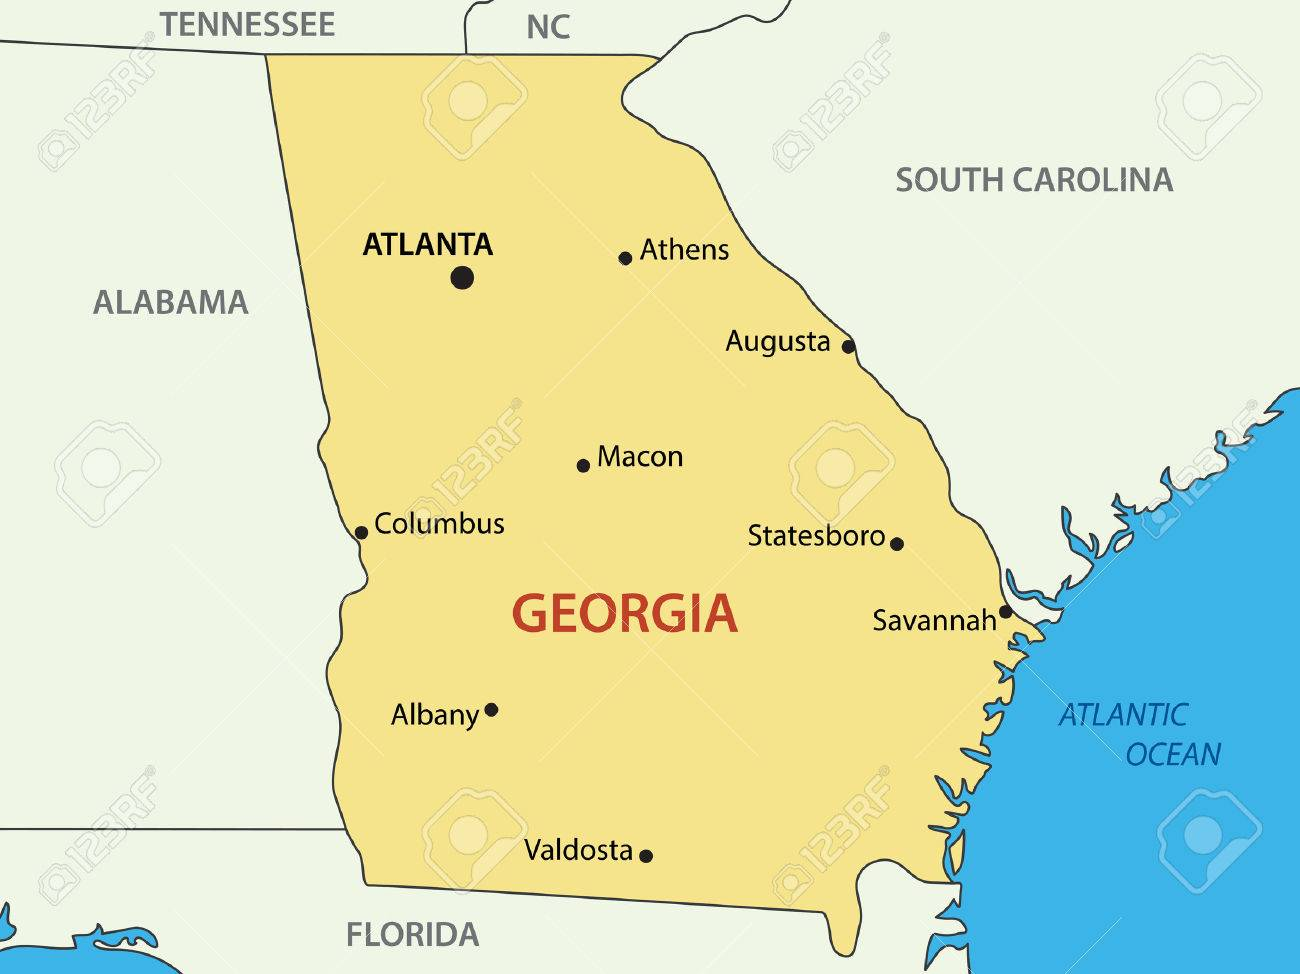 Georgia US State Vector Map Royalty Free Cliparts Vectors - Georgia map us